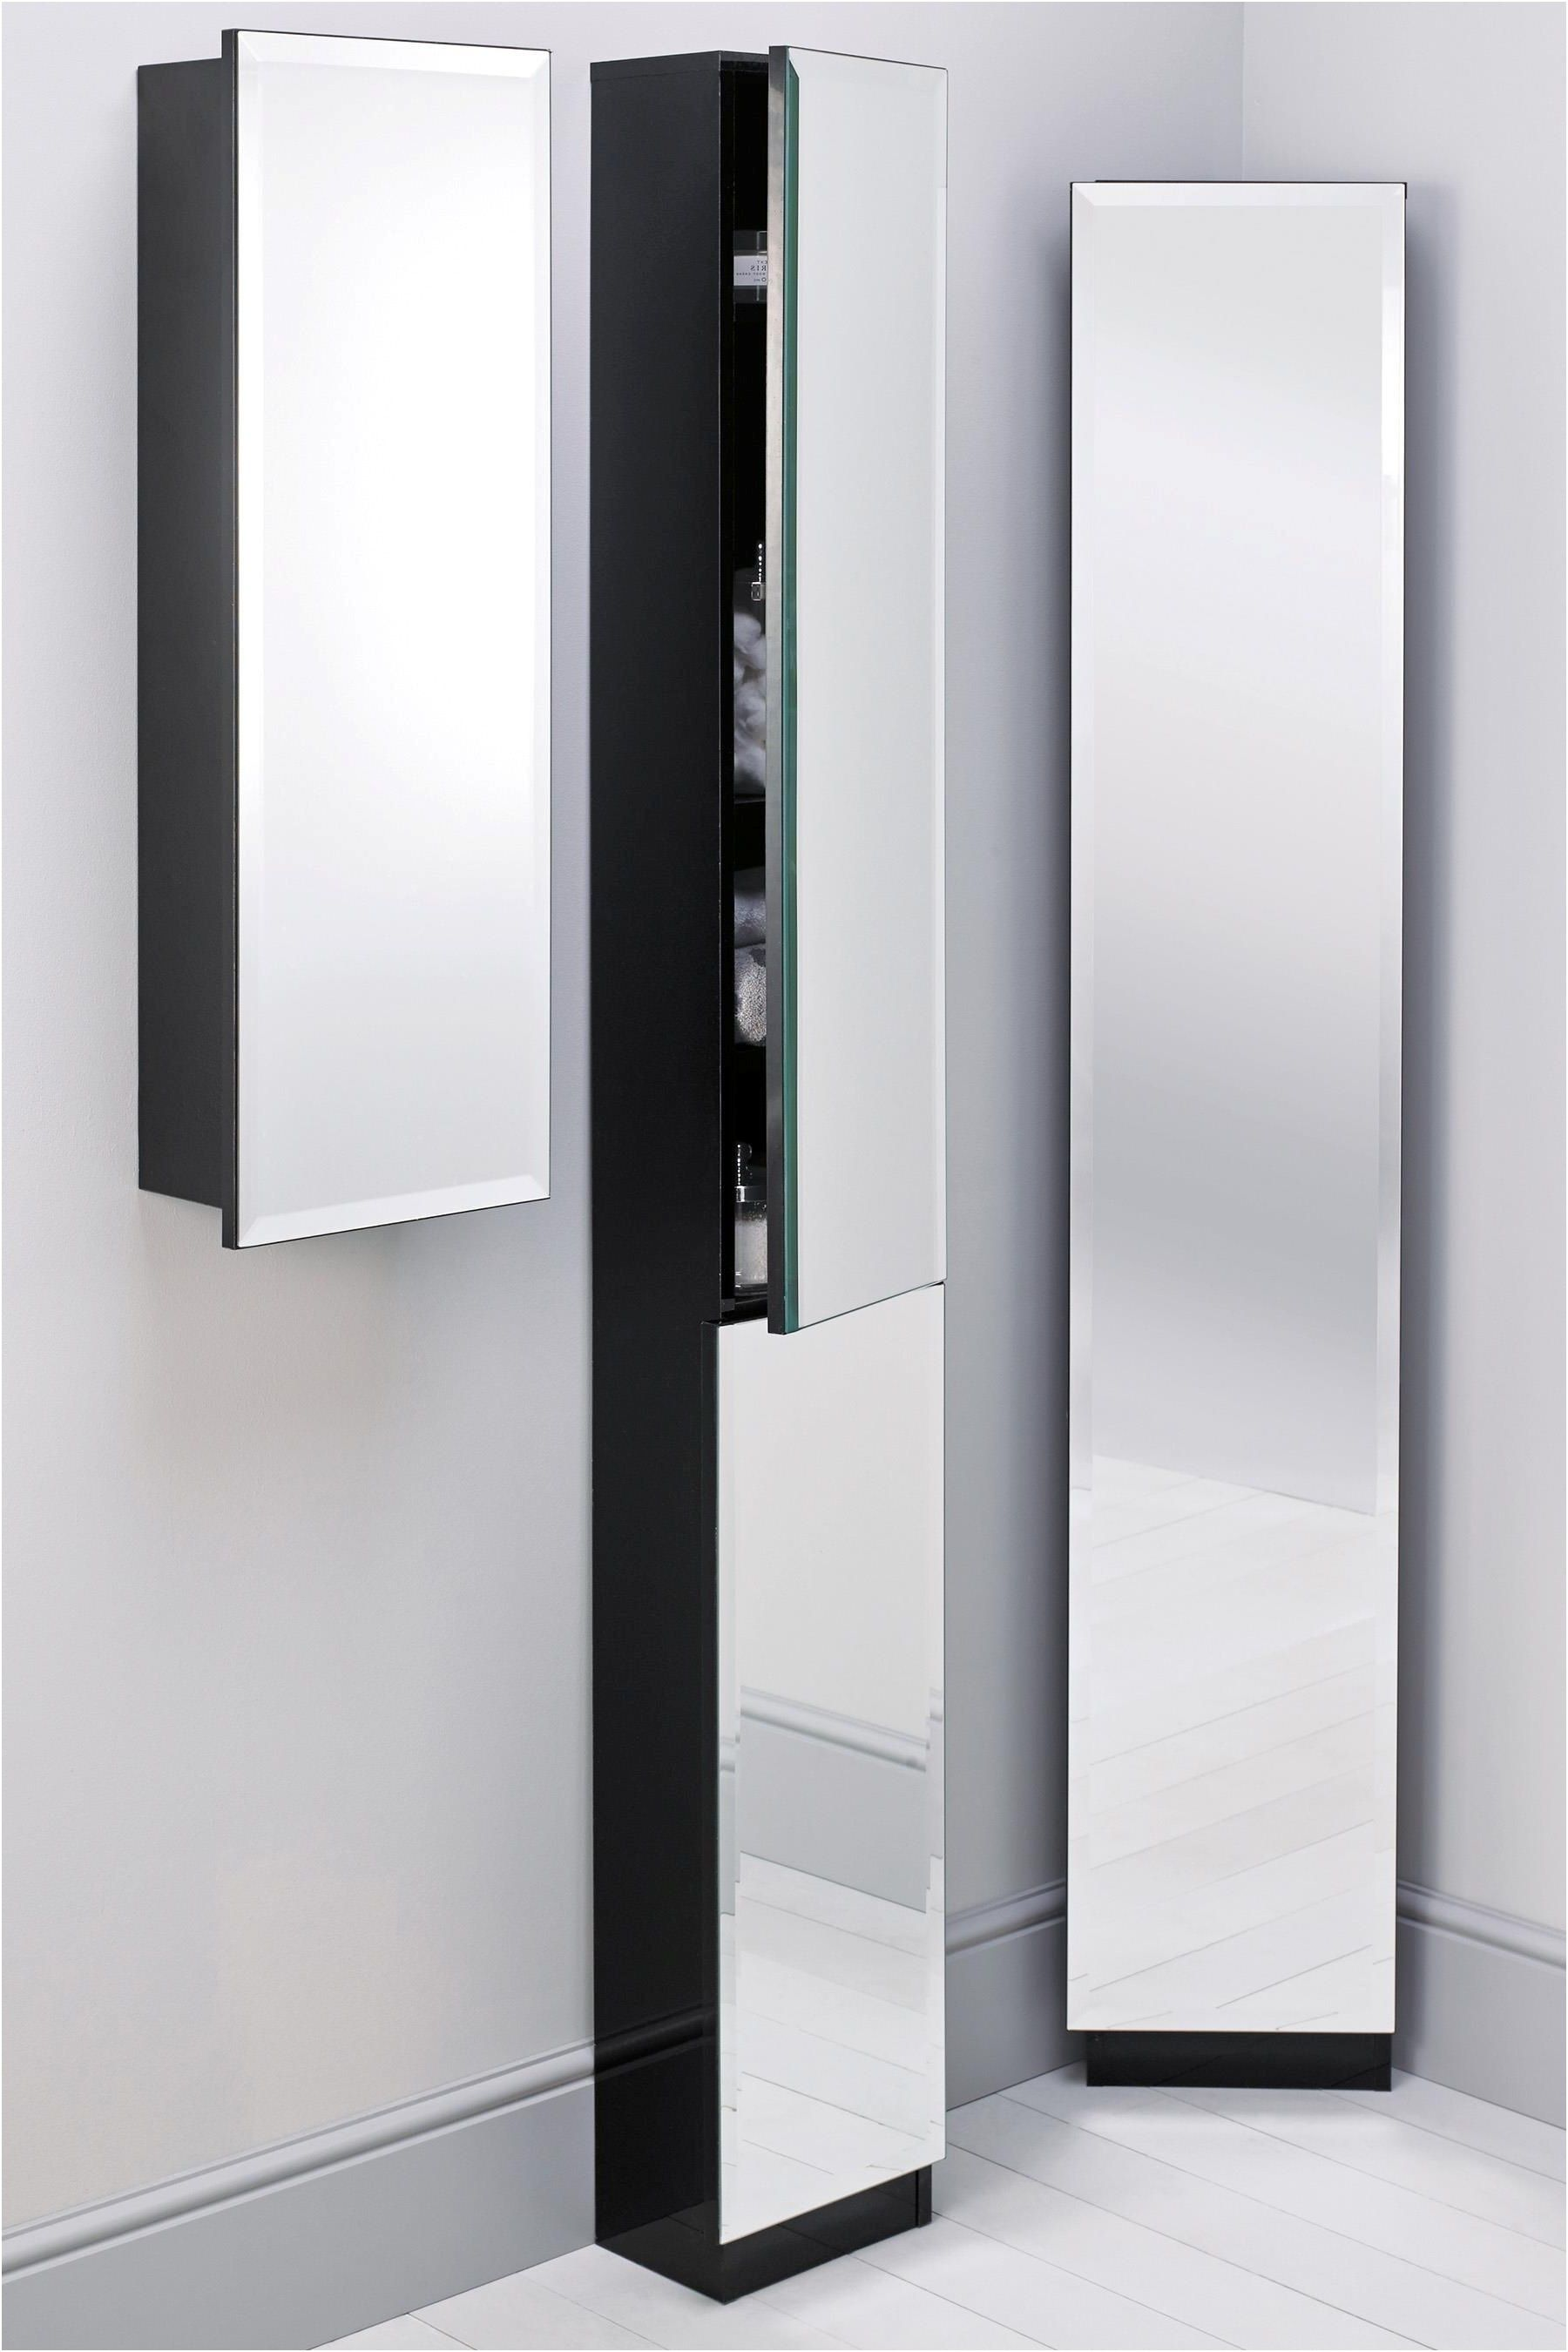 Mirror Design Ideas Tall Ideas Mirrored Corner Bathroom Cabinet From Black Corner Bathroom Cabinet